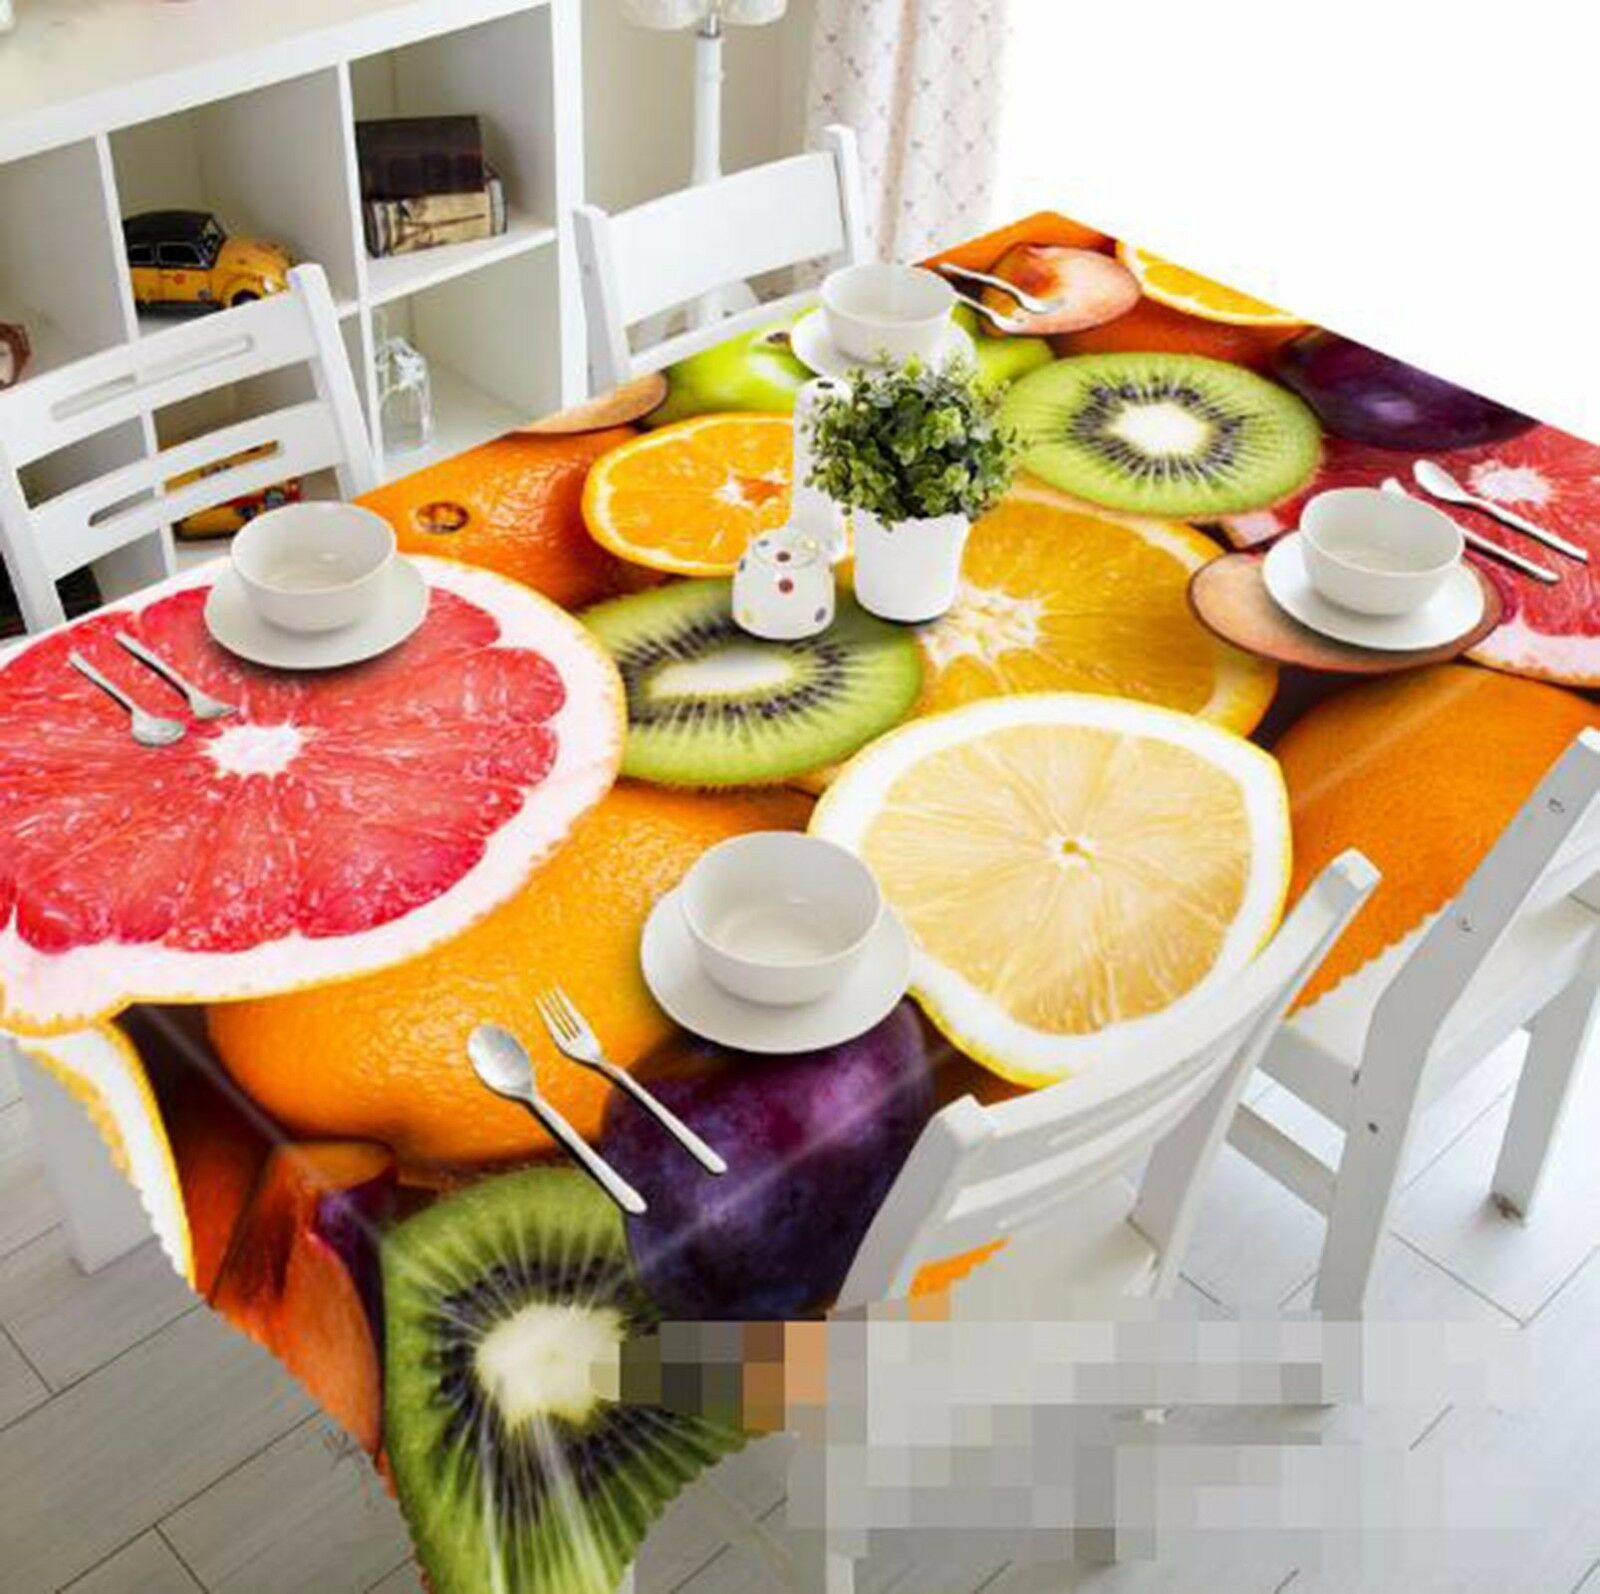 3D Fruits 402 Nappe Table Cover Cloth fête d'anniversaire AJ papier peint Royaume-Uni Citron